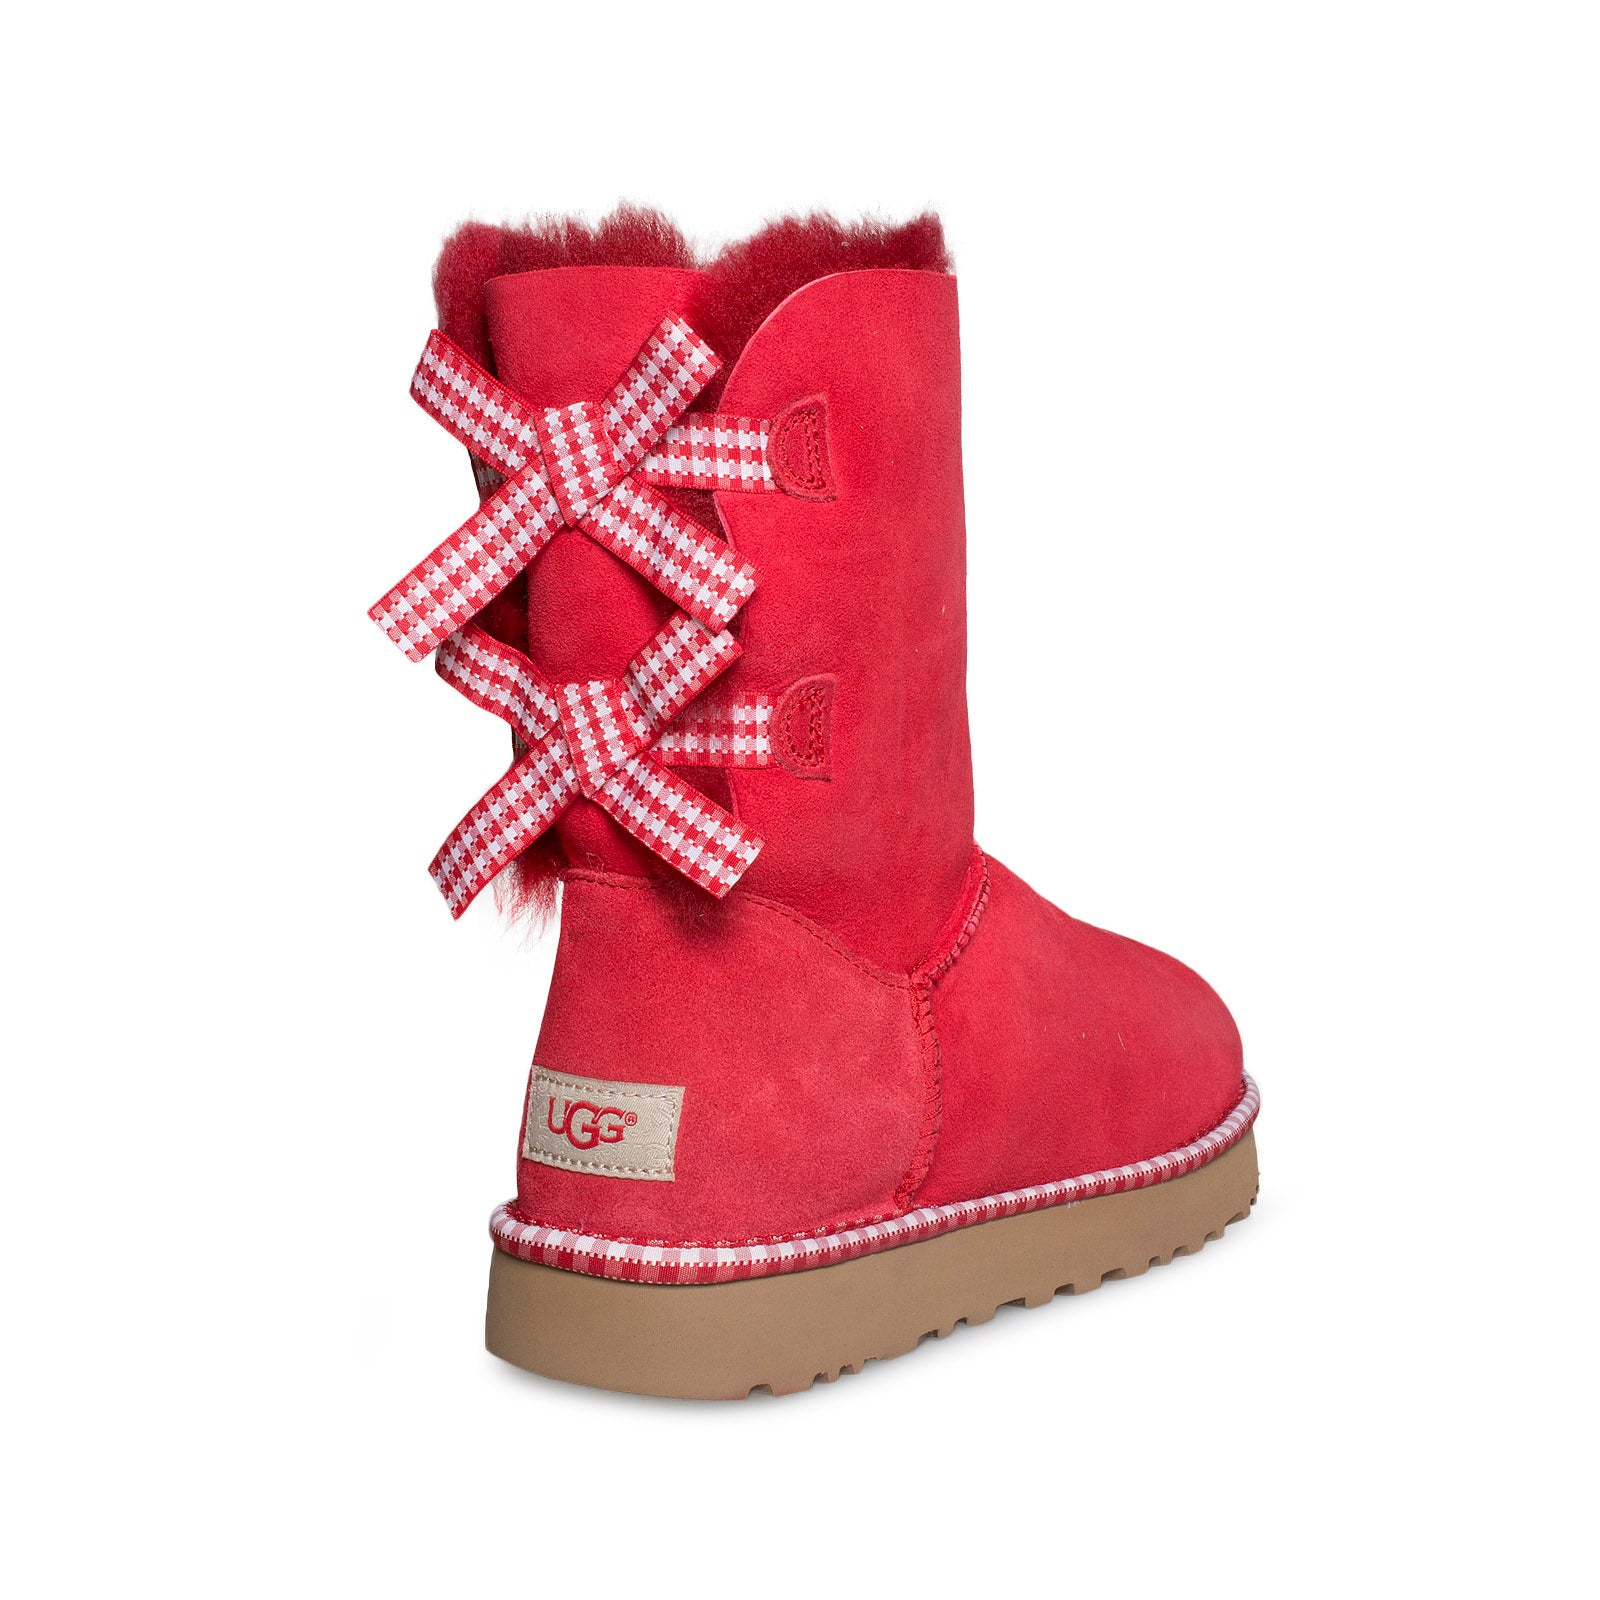 ugg bailey bow gingham ribbon red boots women s mycozyboots rh mcozyboots com